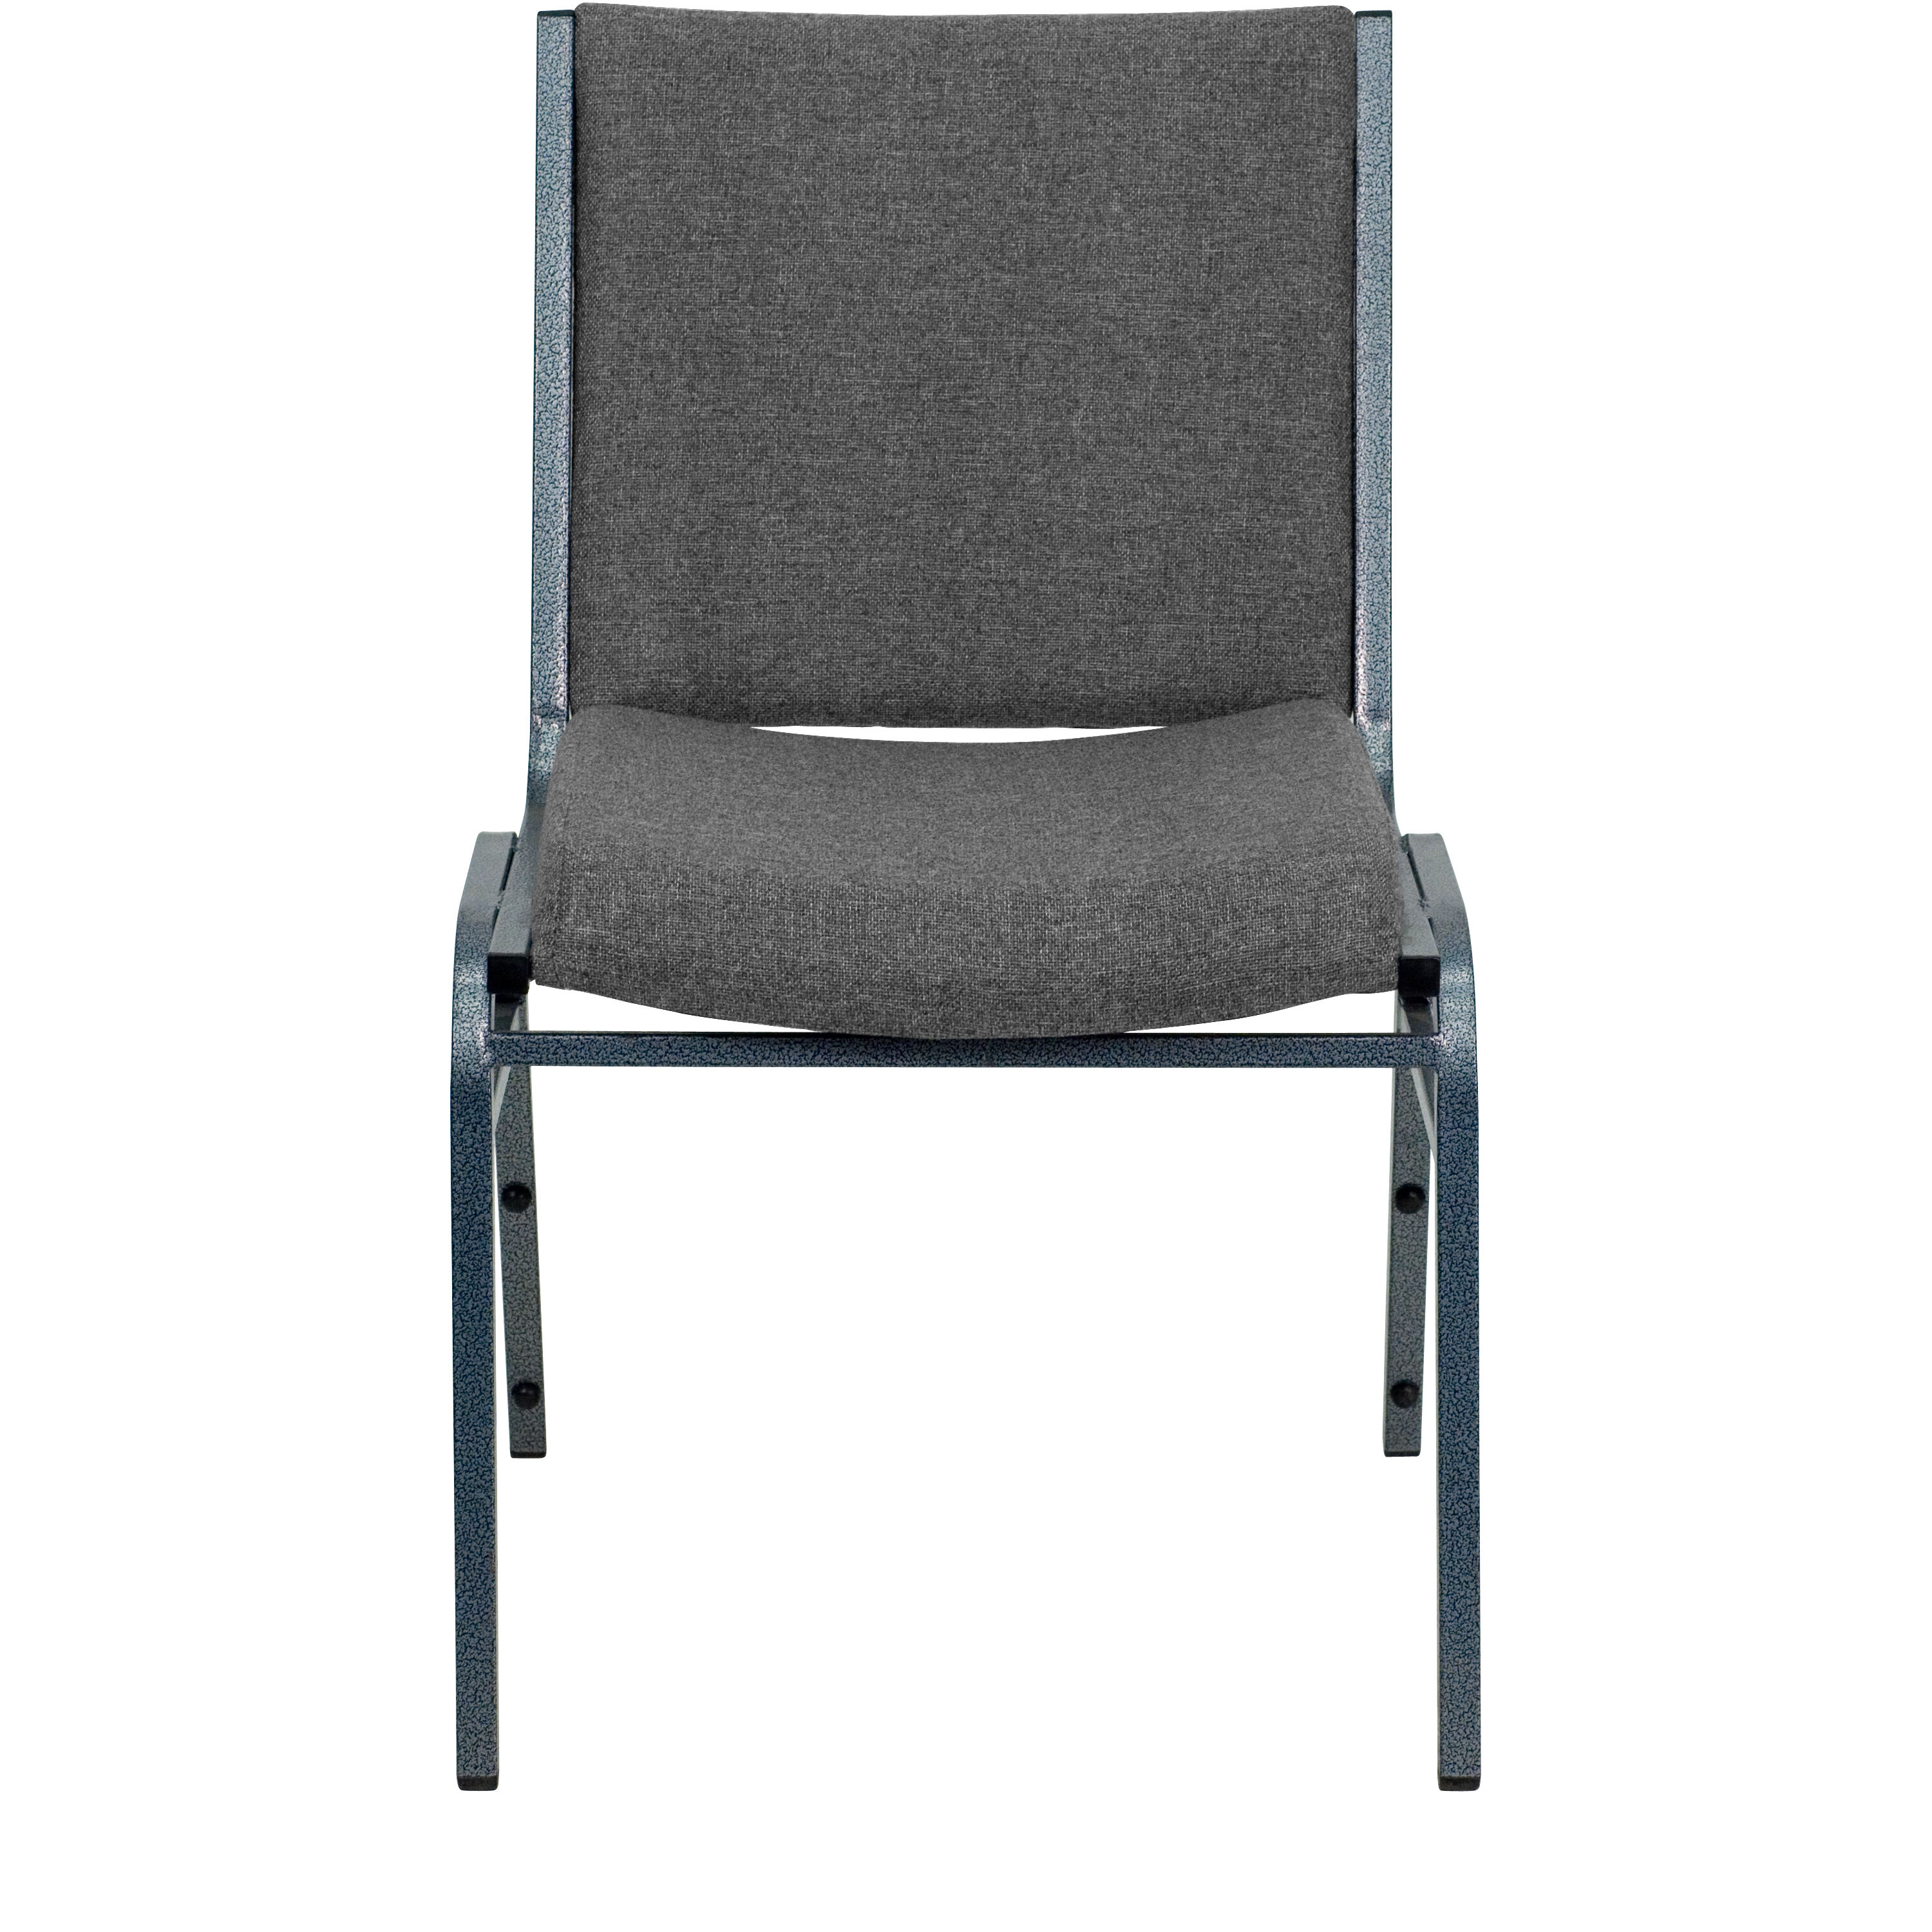 Superieur Our HERCULES Series Heavy Duty Gray Fabric Stack Chair Is On Sale Now.